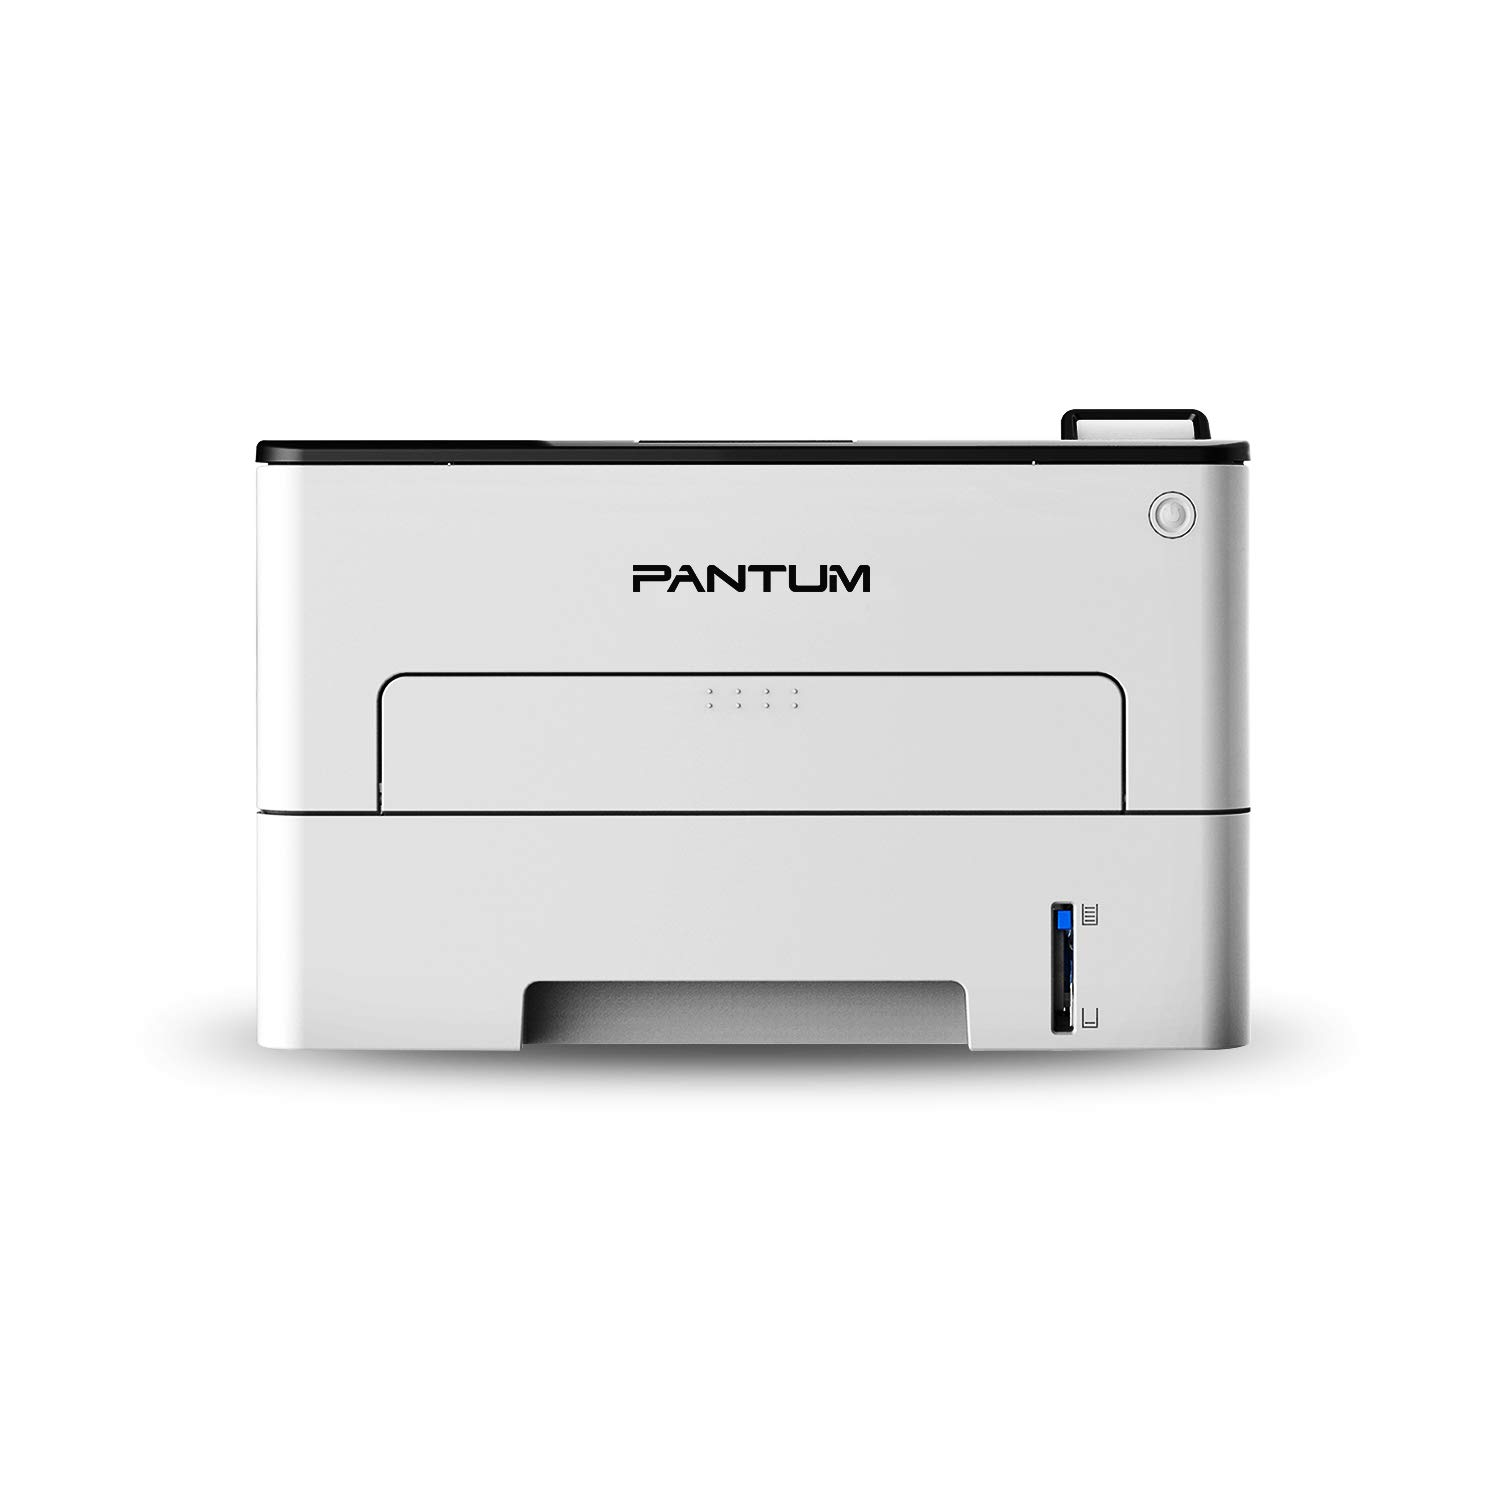 Pantum P3302DW Monochrome Laser Printer with Wireless Networking and Auto Two-Sided Printing